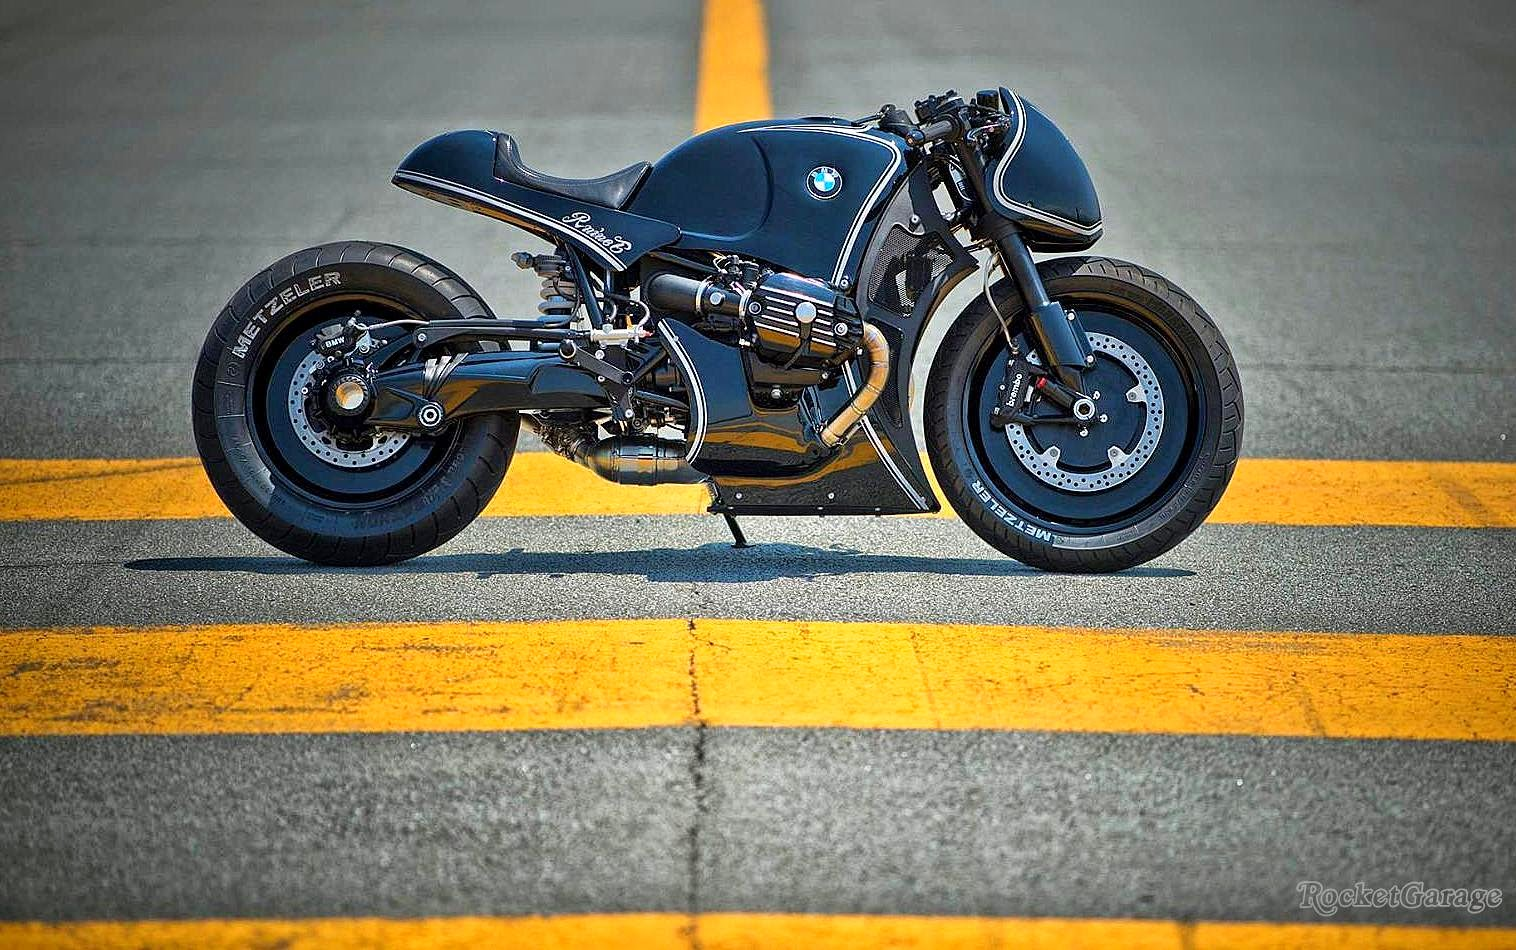 bmw r nine t custom project rocketgarage cafe racer magazine. Black Bedroom Furniture Sets. Home Design Ideas